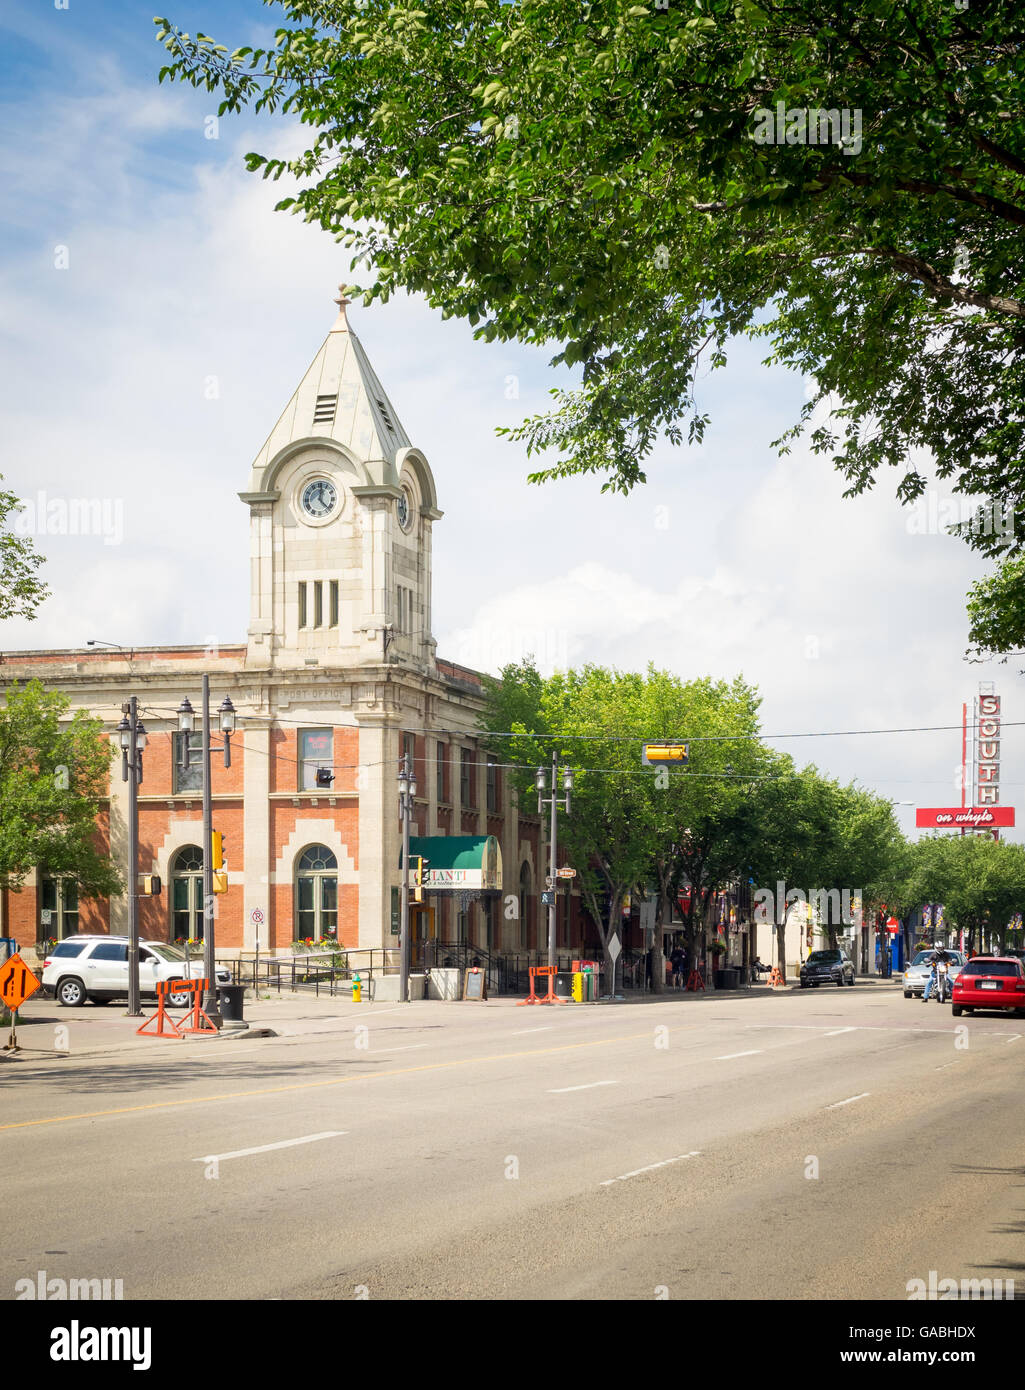 A view of the Old Strathcona Post Office and Whyte Avenue (82 Avenue) in Edmonton, Alberta, Canada. - Stock Image